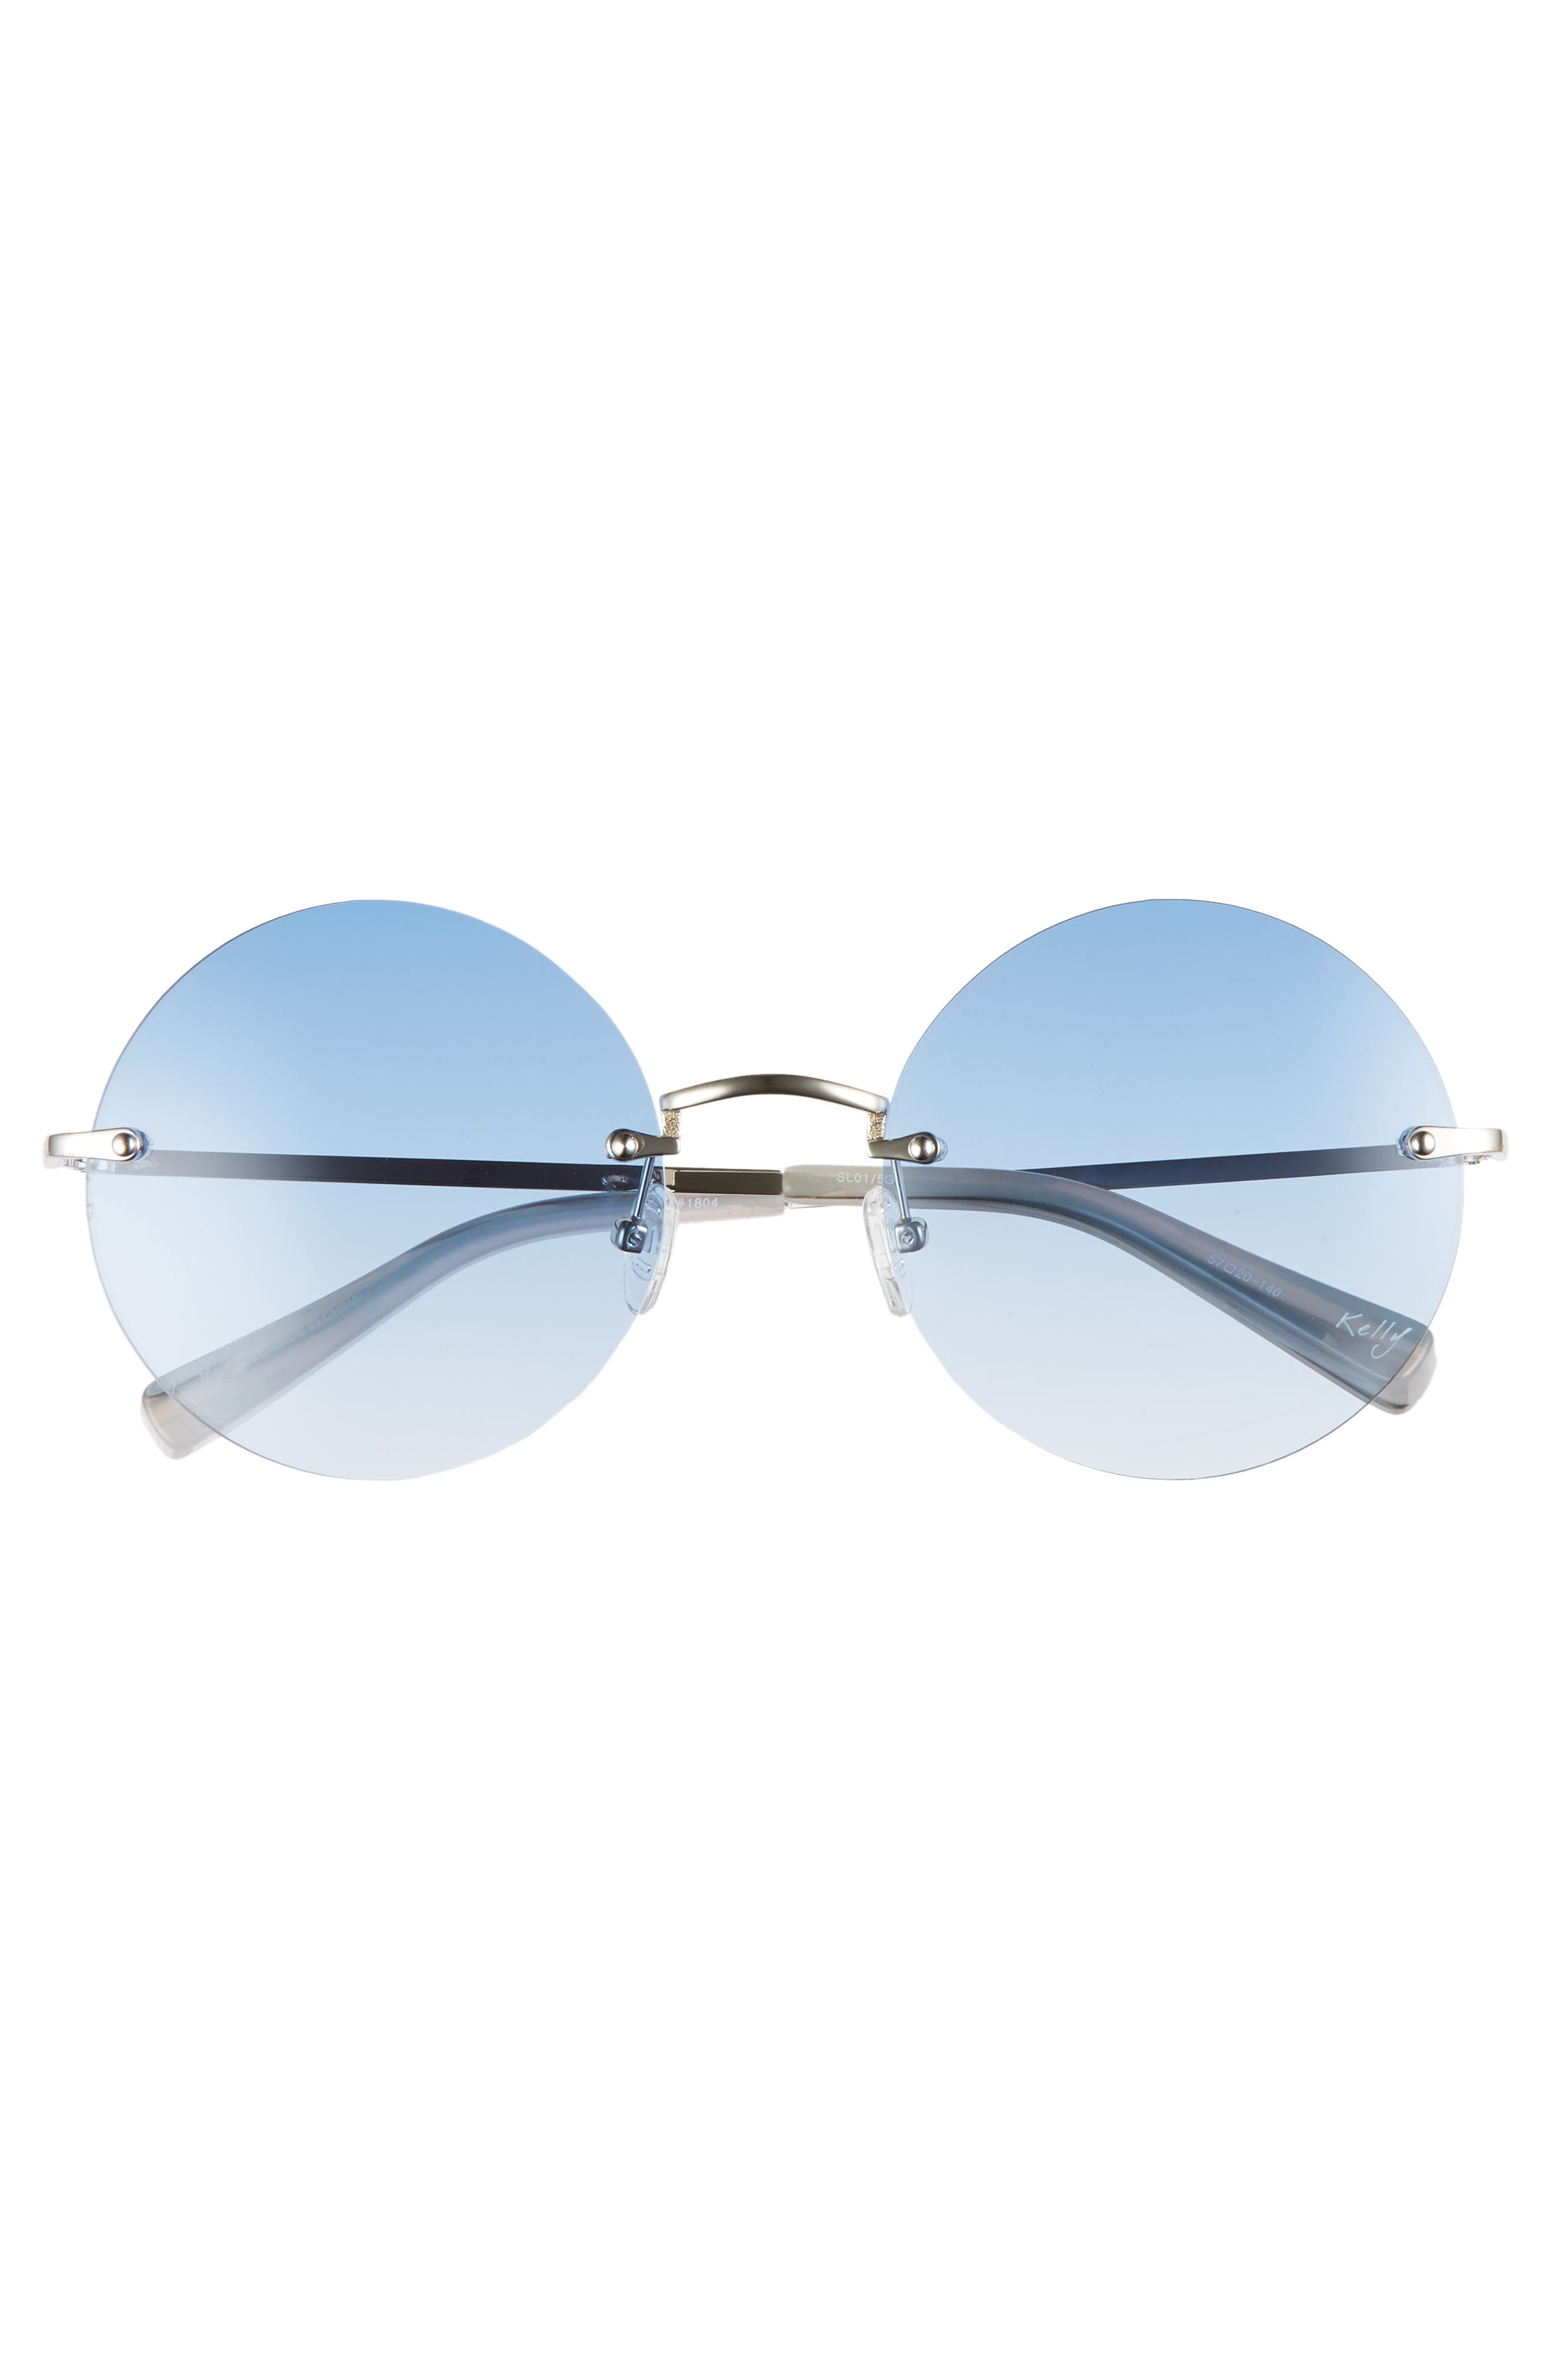 Kelly 57mm Rimless Round Sunglasses,                             Alternate thumbnail 3, color,                             SILVER/ BLUE